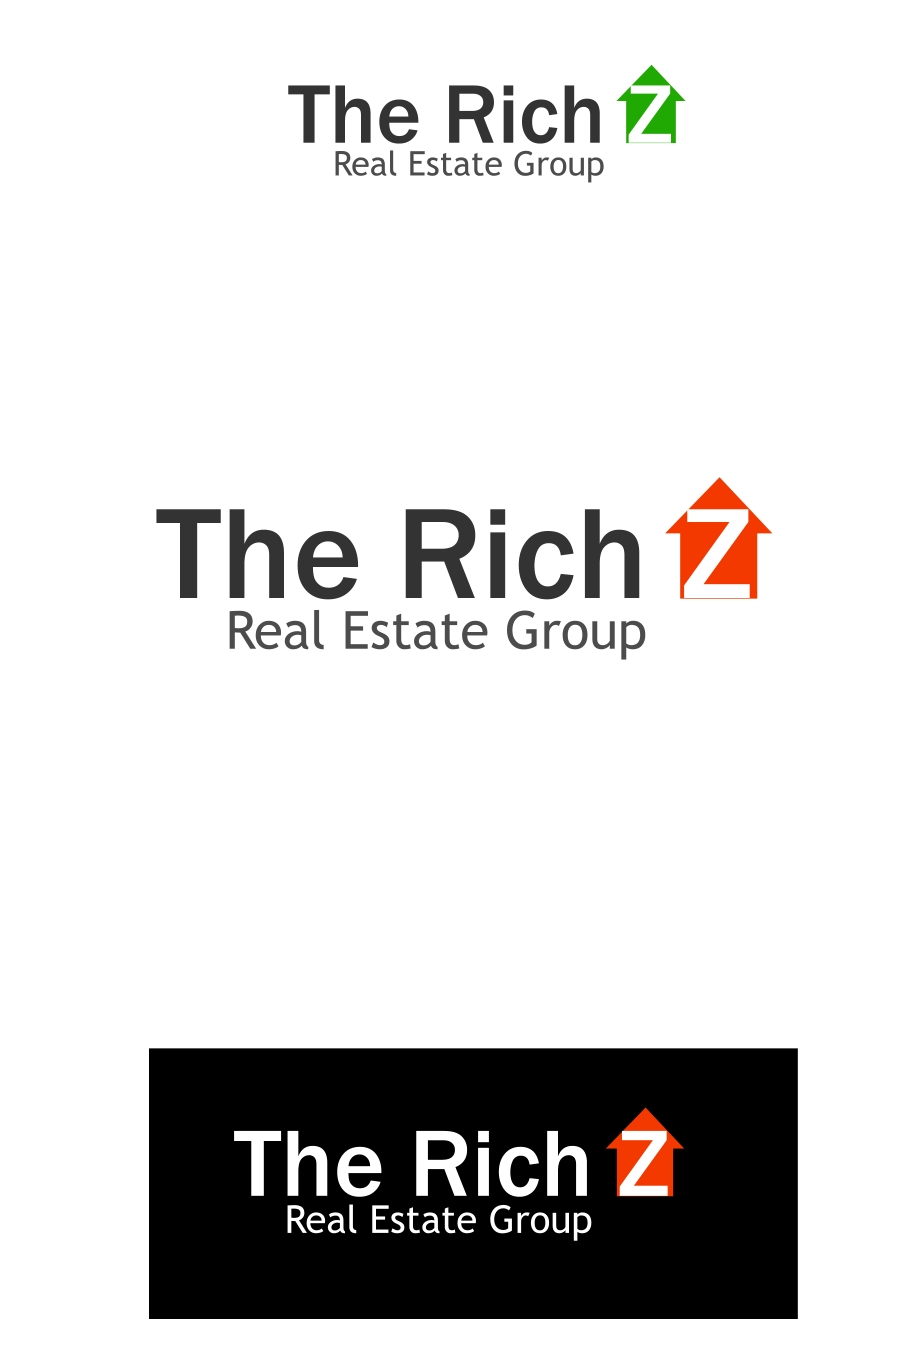 Logo Design by Private User - Entry No. 18 in the Logo Design Contest The Rich Z. Real Estate Group Logo Design.